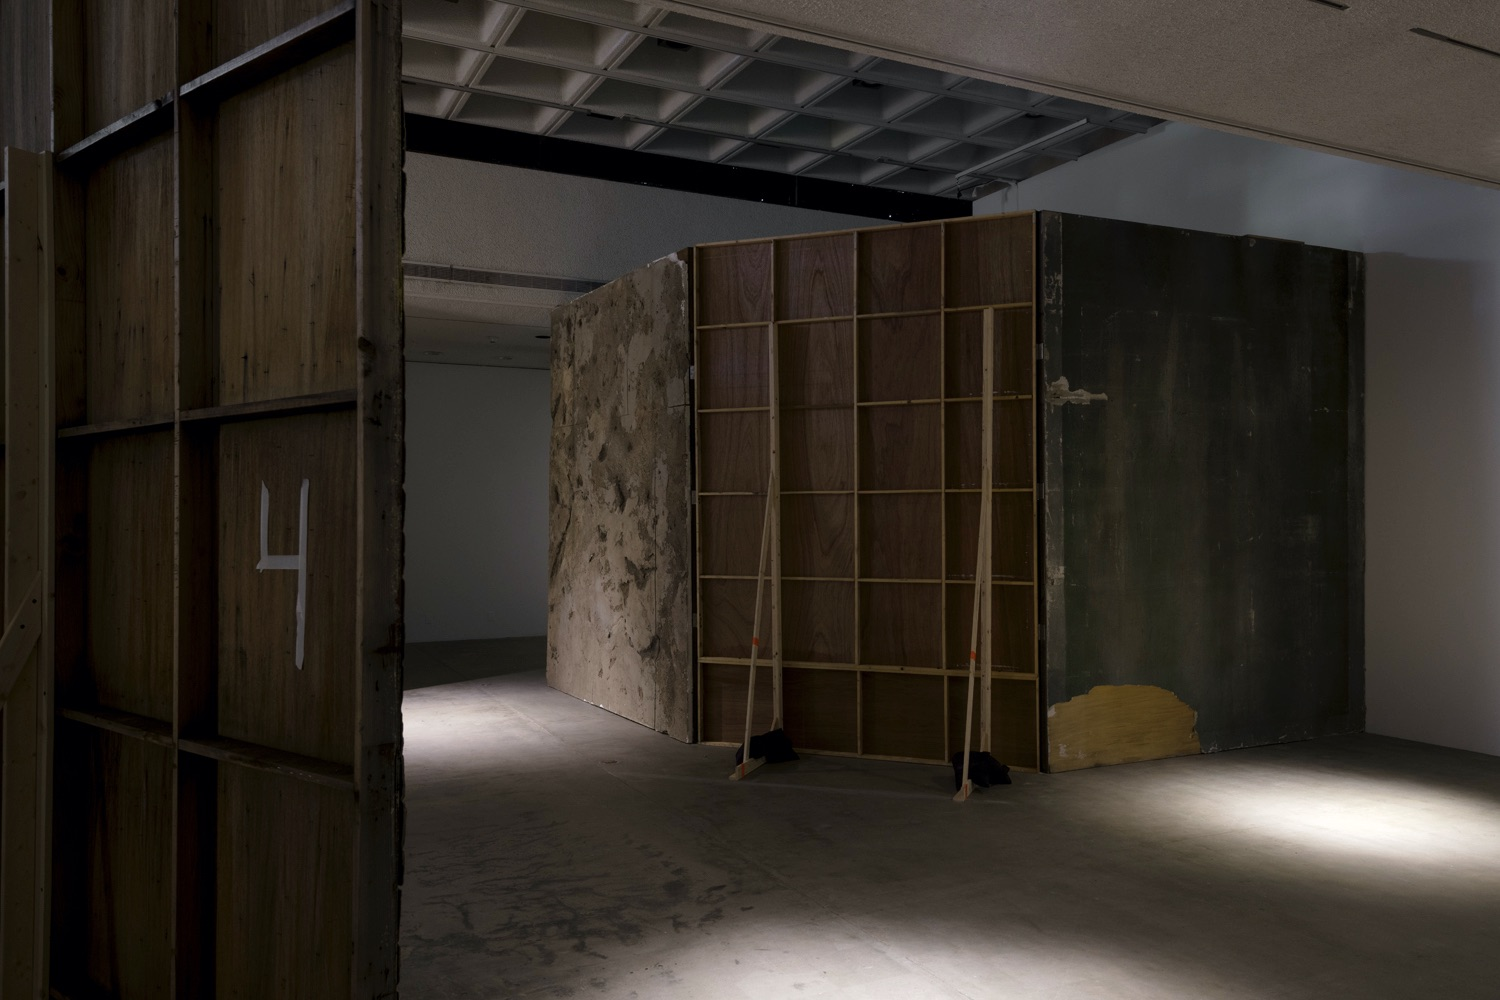 A featured art video installation set-up by the artist Abigail Raphael Collins has three tall wooden walls. The far left wooden wall is painted grey and has a rough, seemingly rocky surface, the middle wall is a grid of wooden squares with two long wooden beams along with black sandbags for support, and the far right wall is painted a darker grey with a large piece of paint missing in its bottom left corner. Another art video installation is located in the far left of the image, which has a wooden wall and white colored written number 4.